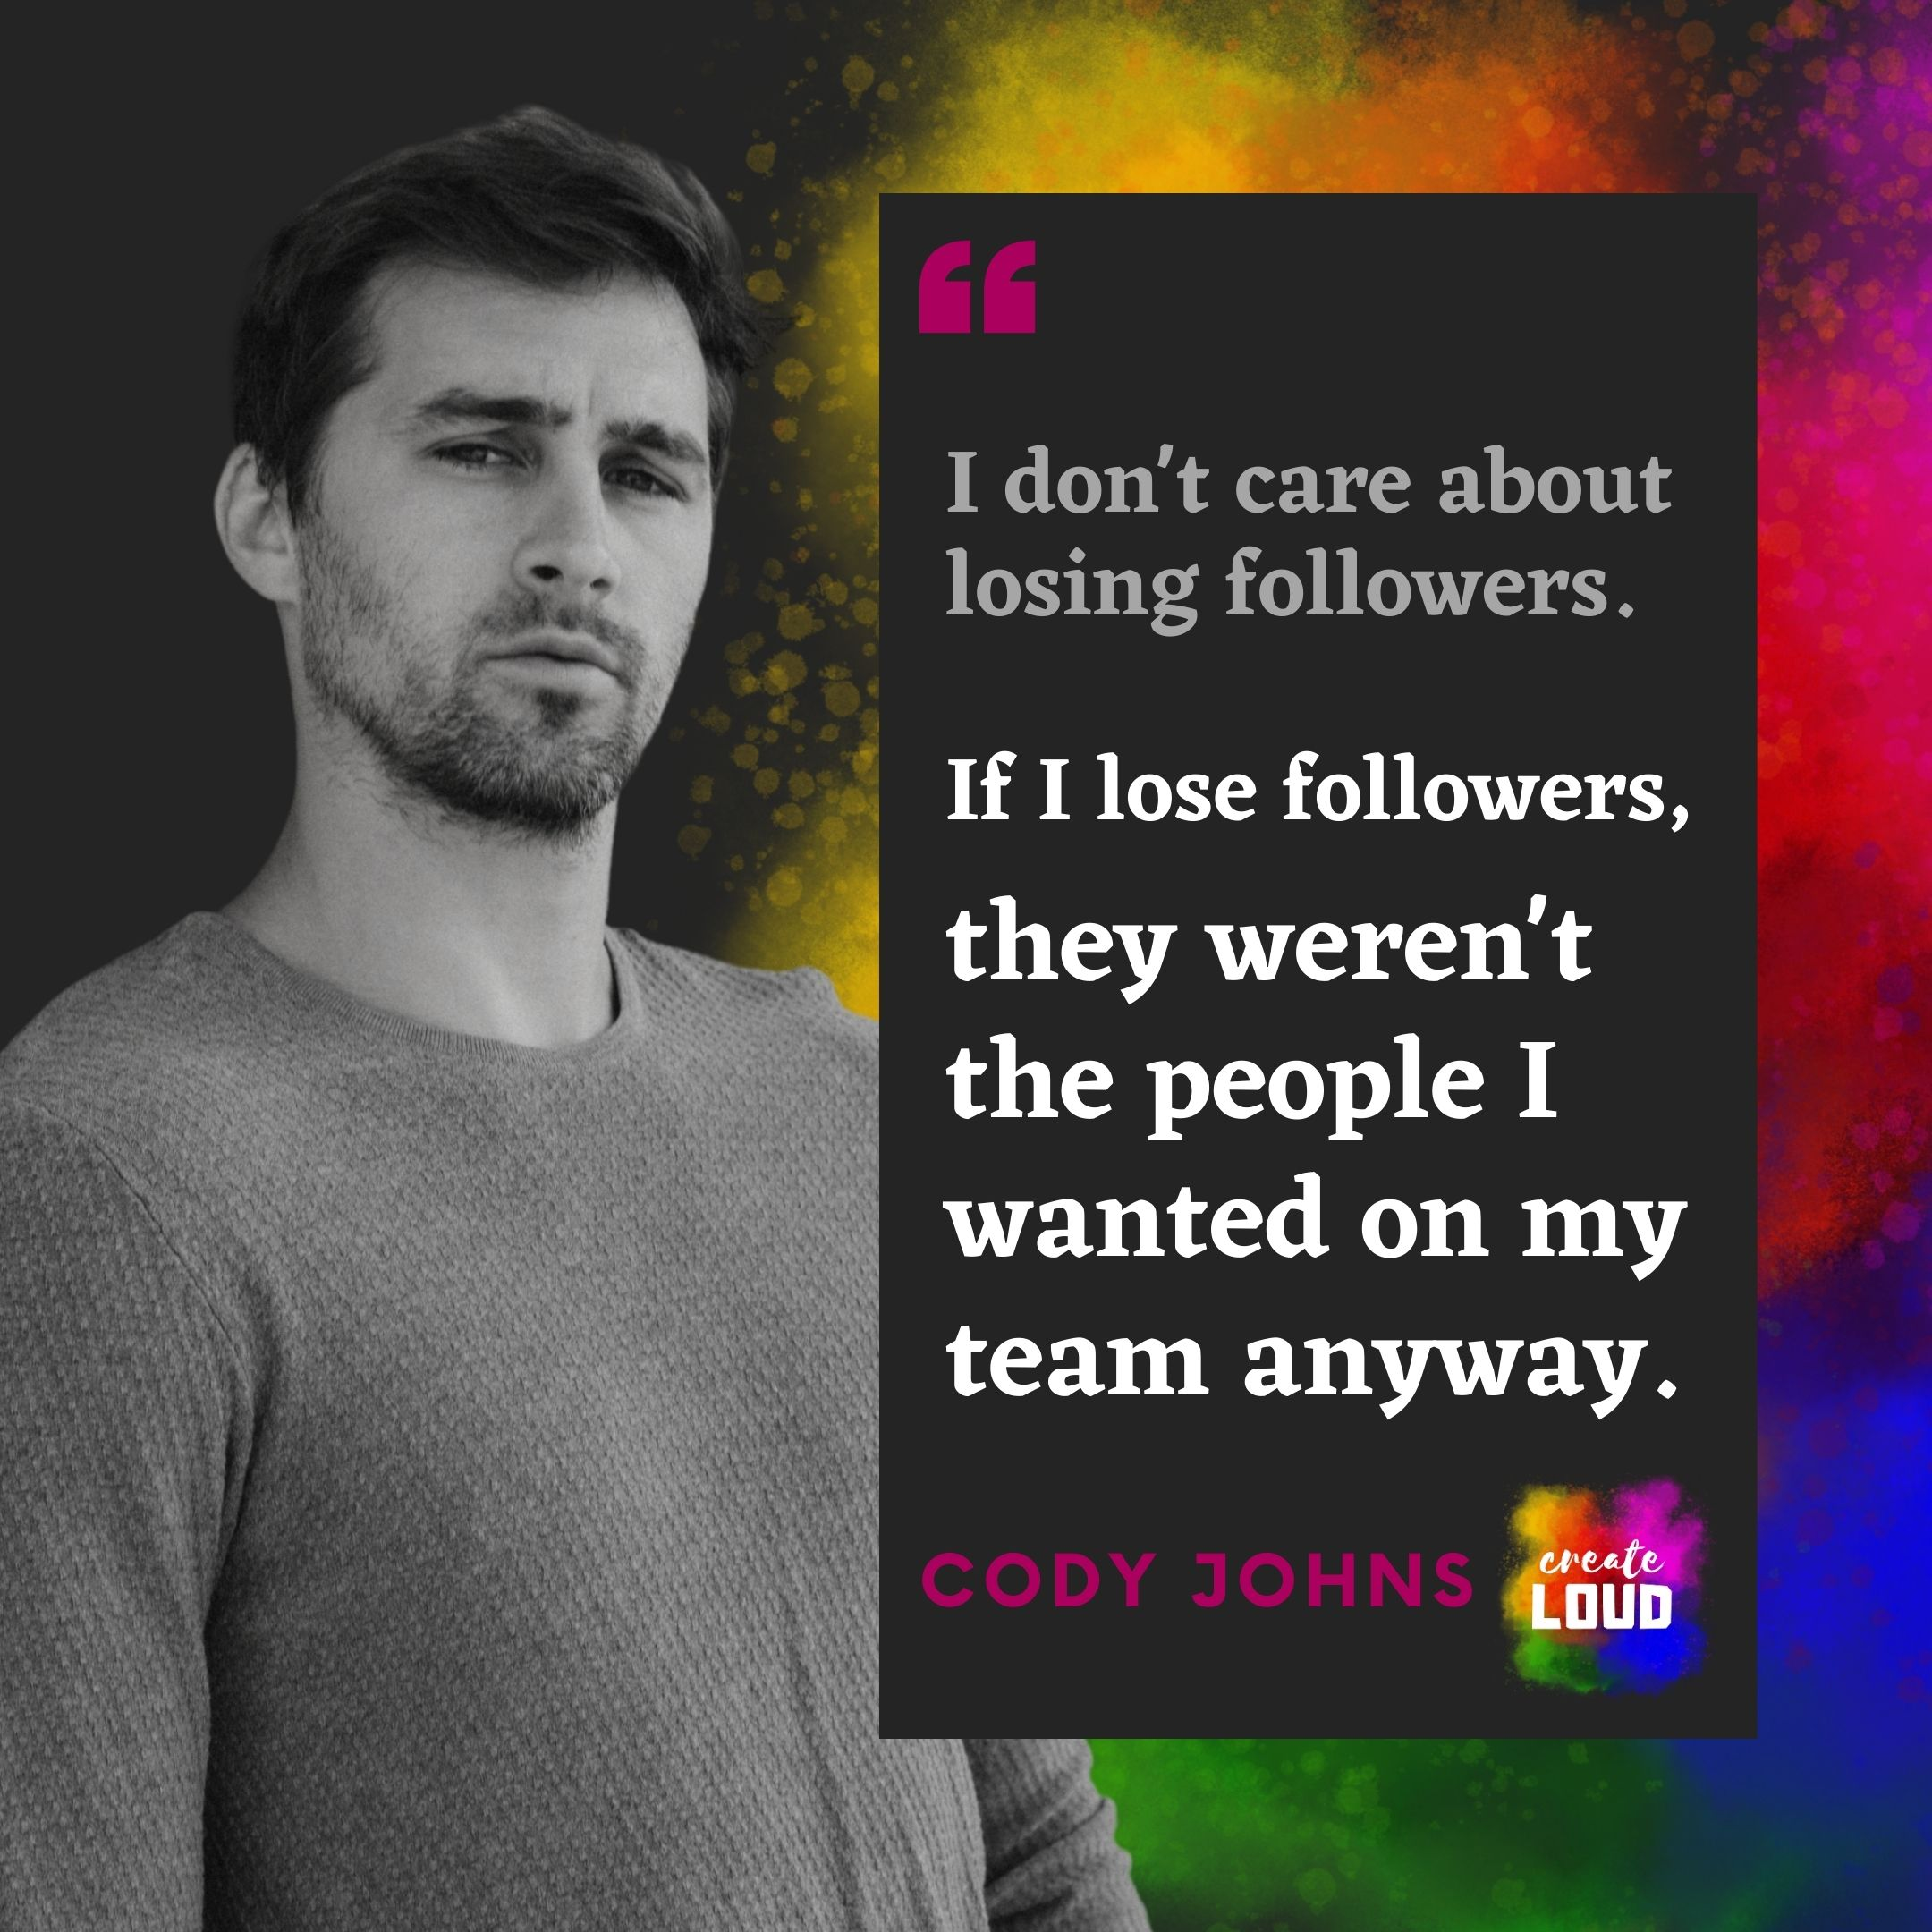 Cody Johns on Losing Followers [IMAGE]